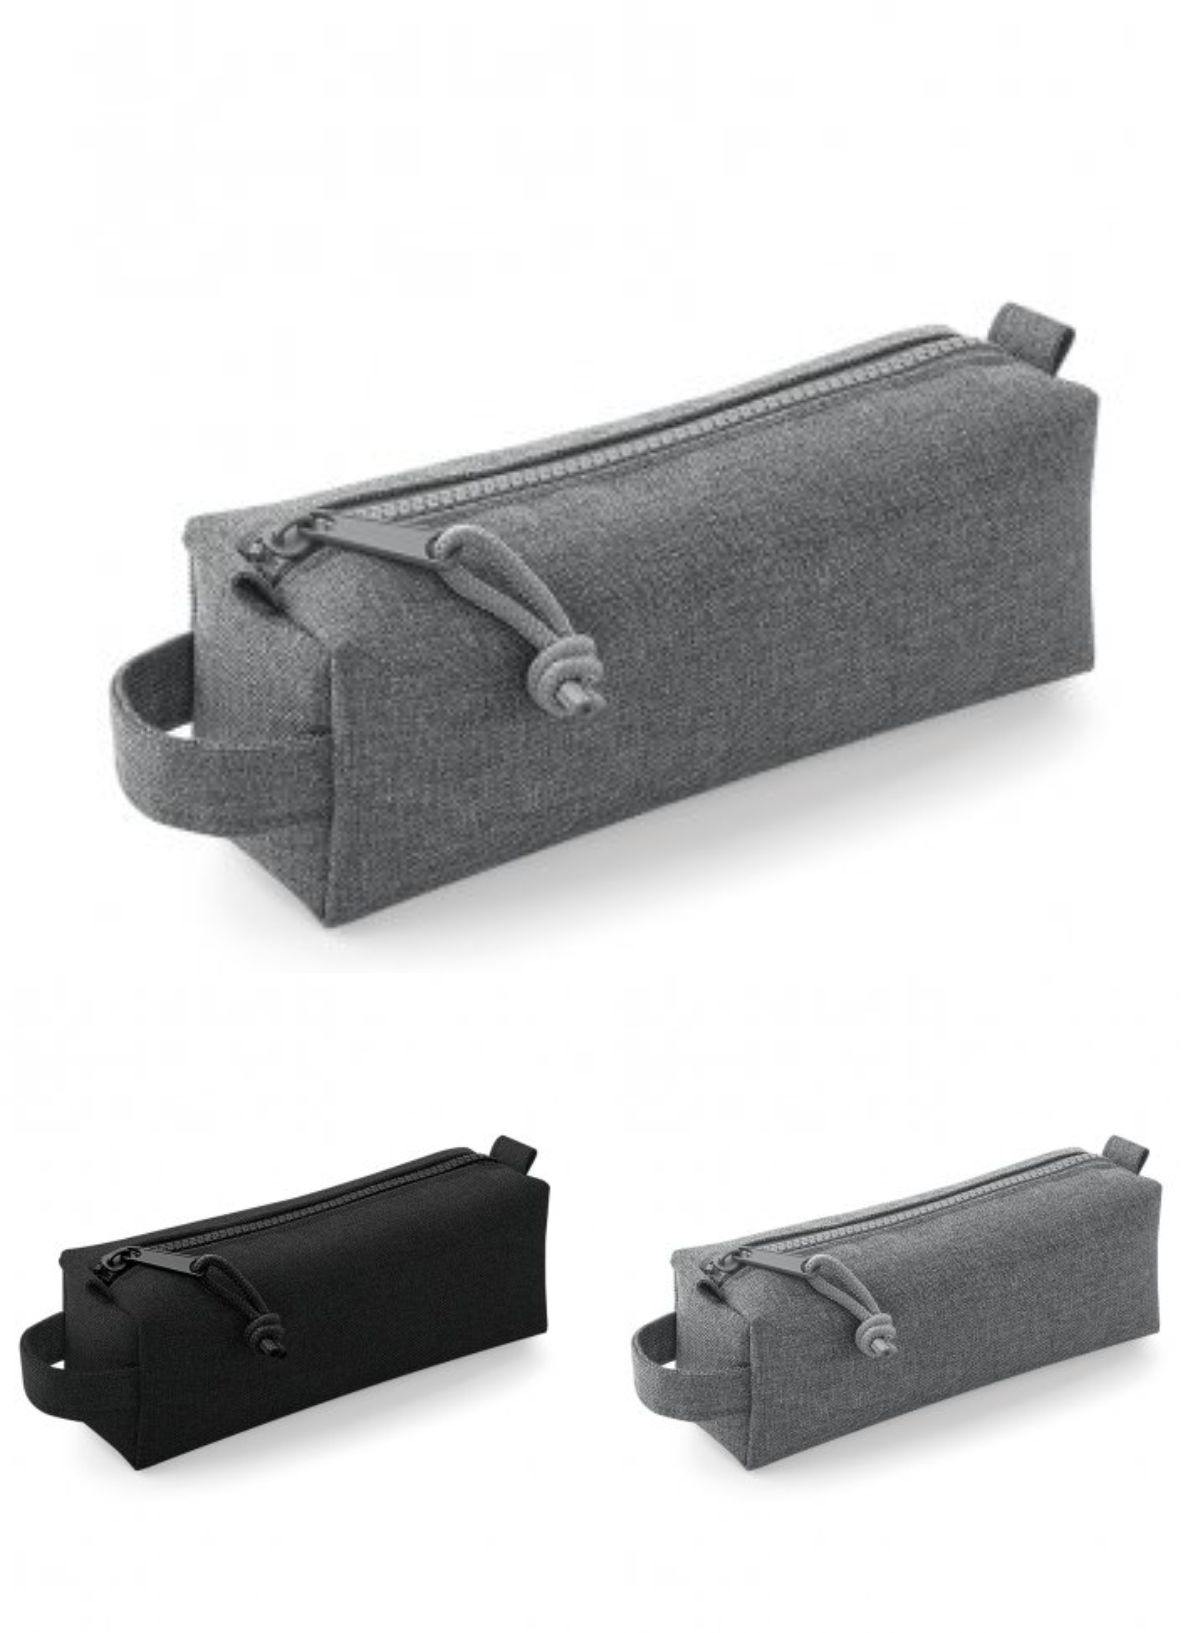 Bagbase BG69 Essential Pencil/accessory case